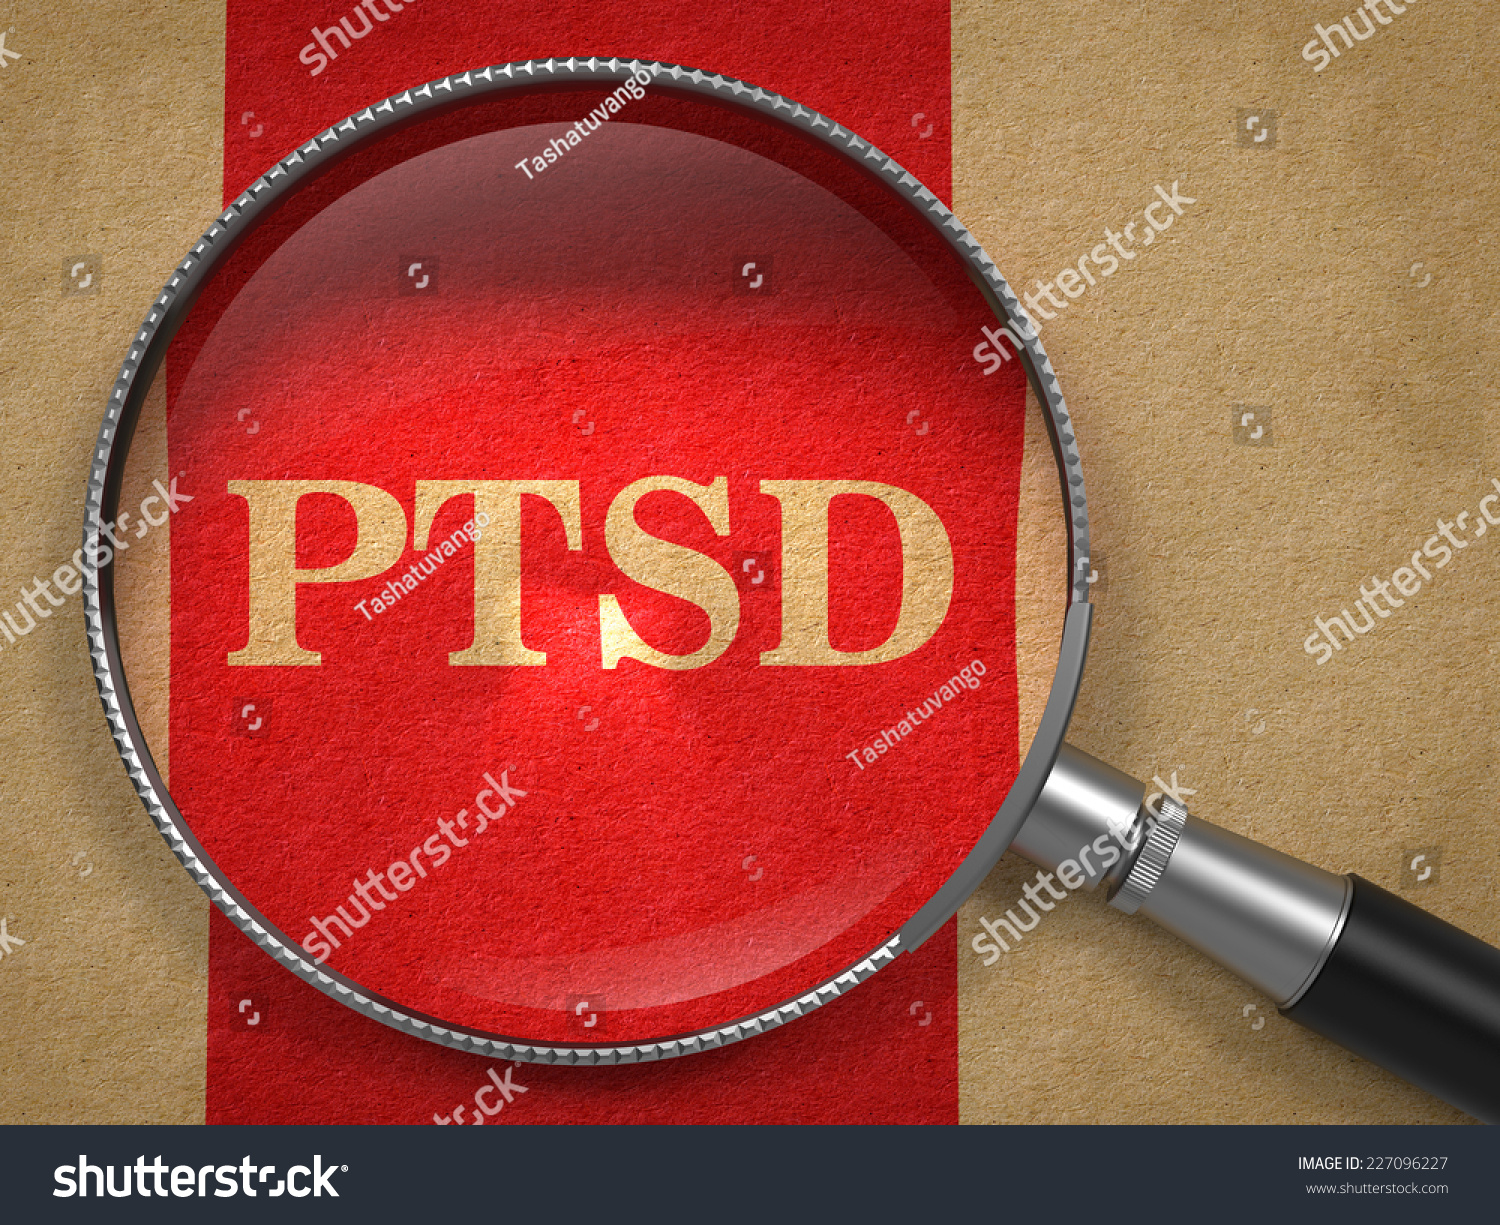 essays on post traumatic stress disorder This research paper posttraumatic stress disorder and other 64,000+ term papers, college essay examples and free  post traumatic stress disorder and communication .